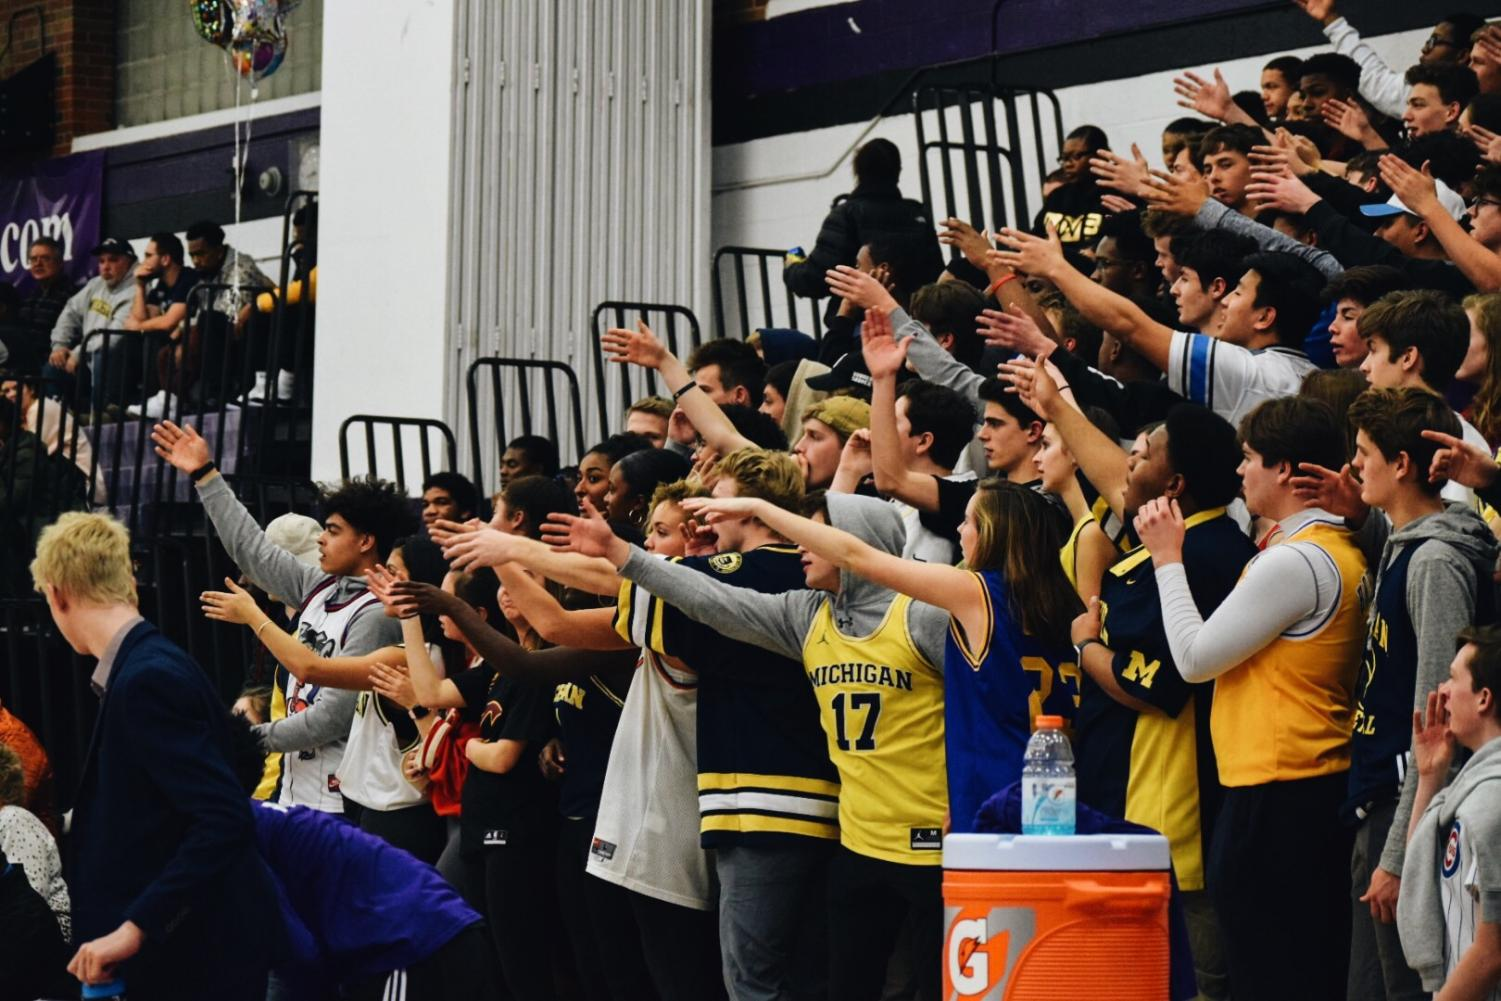 Pioneer+students+in+the+stands+perform+chants+during+the+match+against+the+Huron+River+Rats.